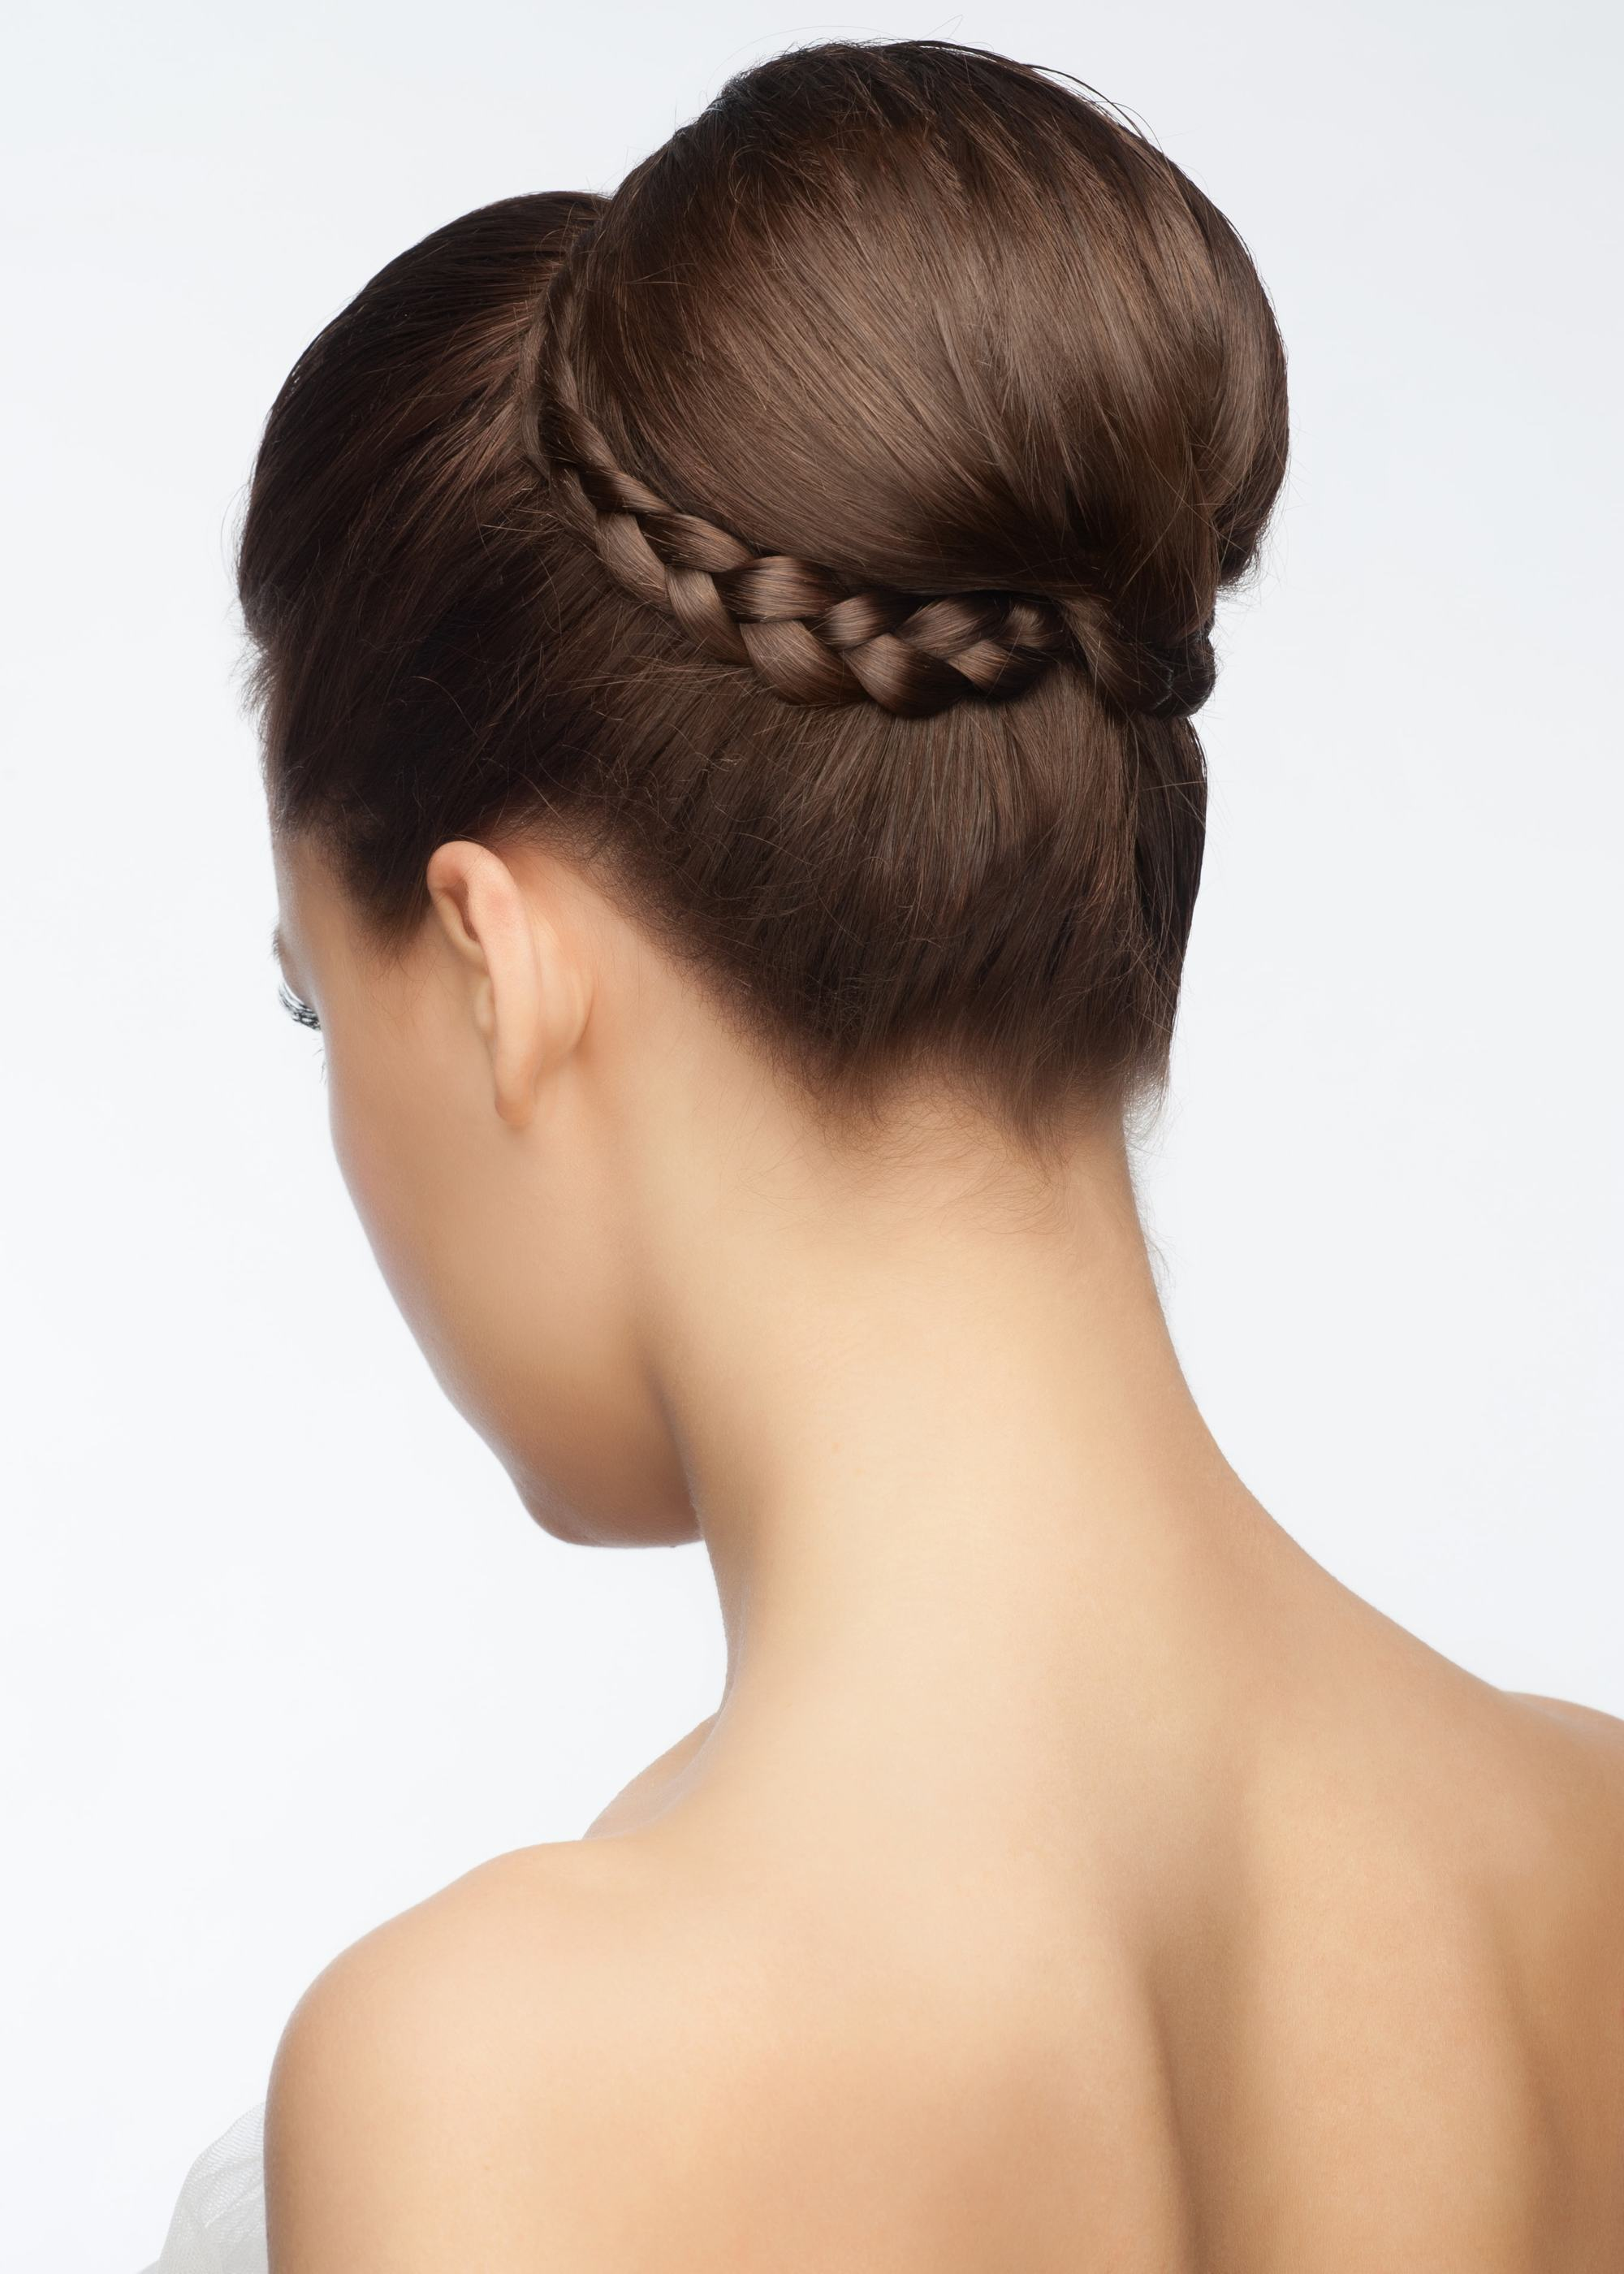 Brown hair in high chignon hairstyle wrapped with a braid